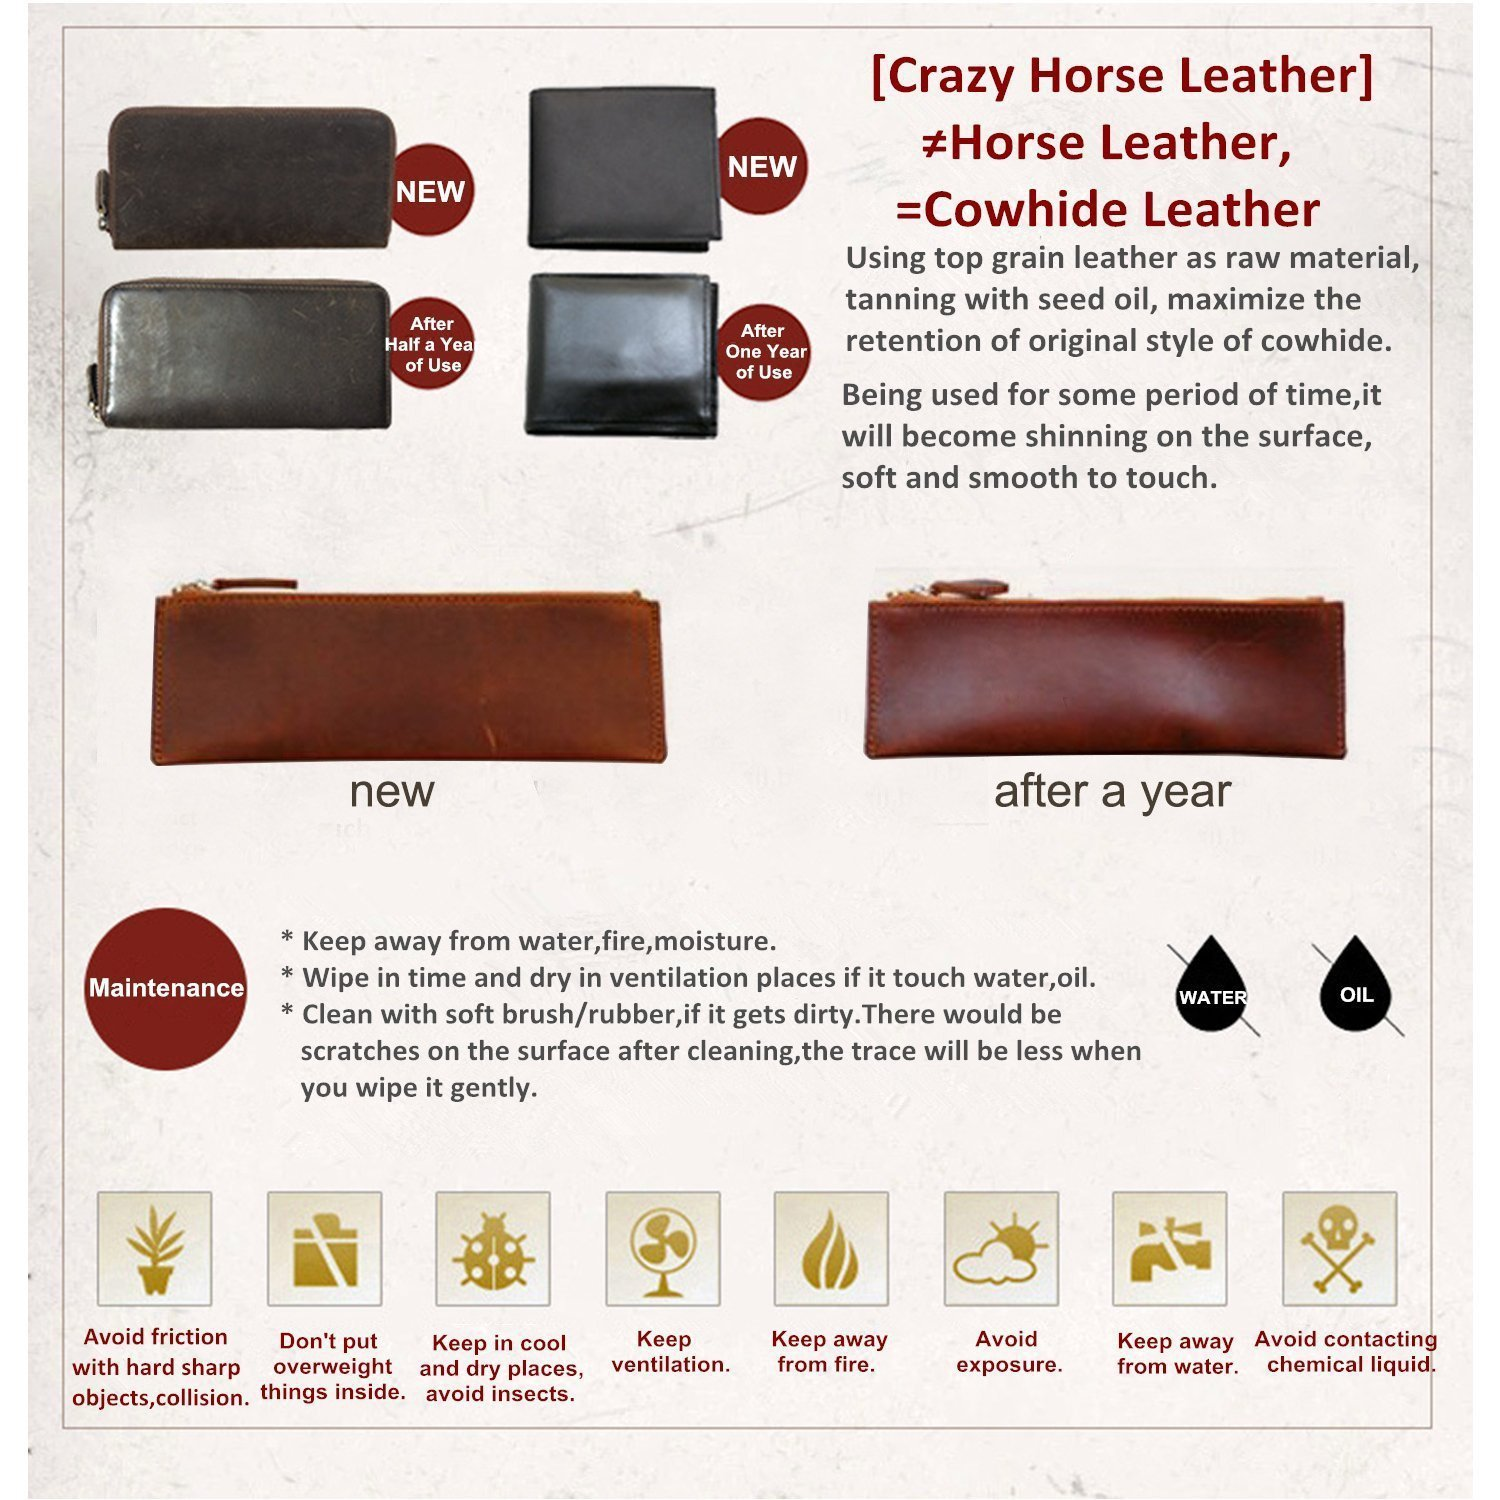 S-ZONE Crazy Horse Leather Shoulder Briefcase for 16 Inch Laptop Bag by S-ZONE (Image #7)